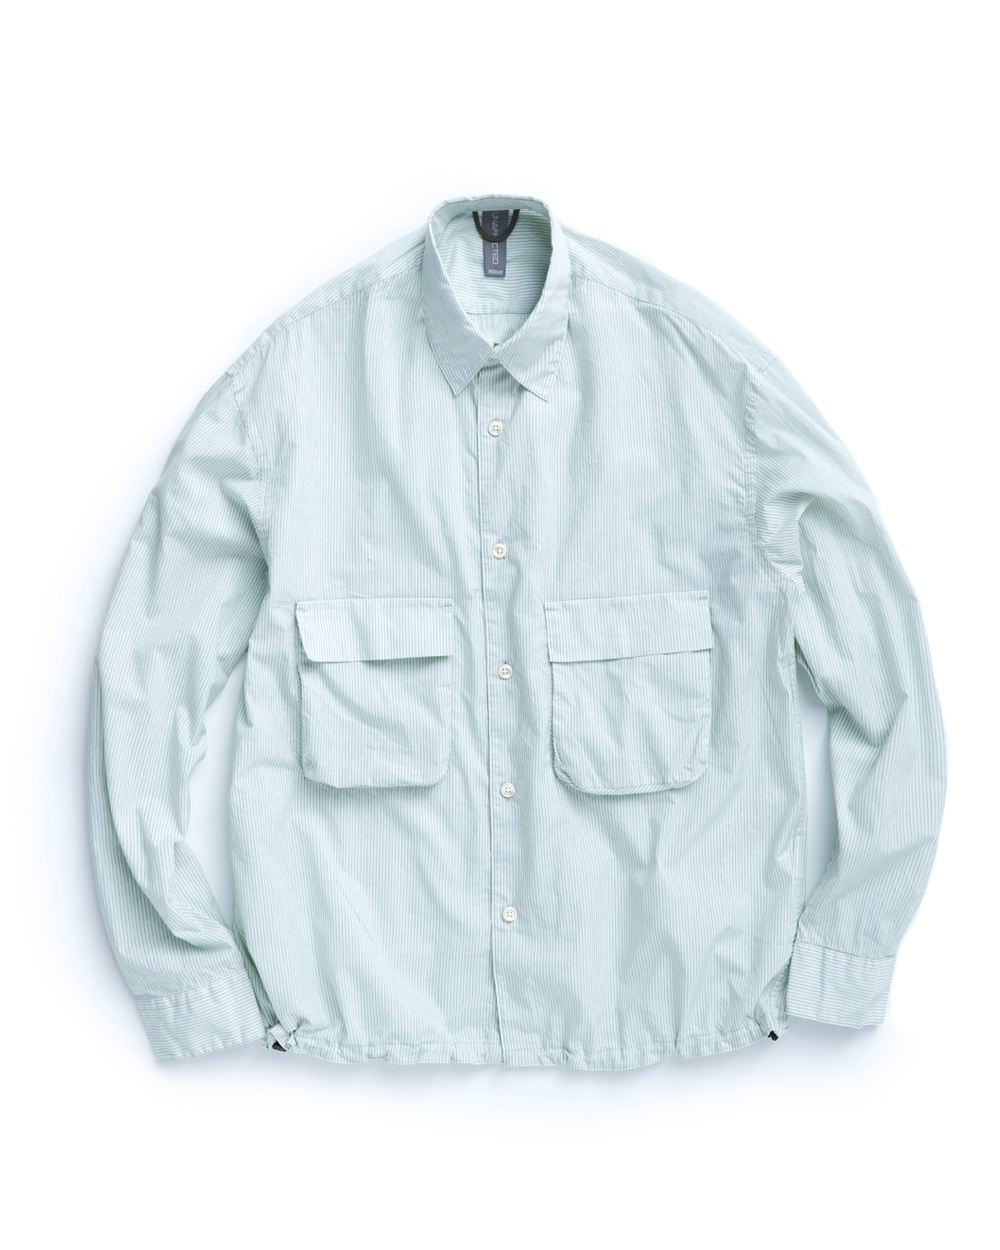 언어펙티드 OVERSIZED SHIRT (Misty Mint)